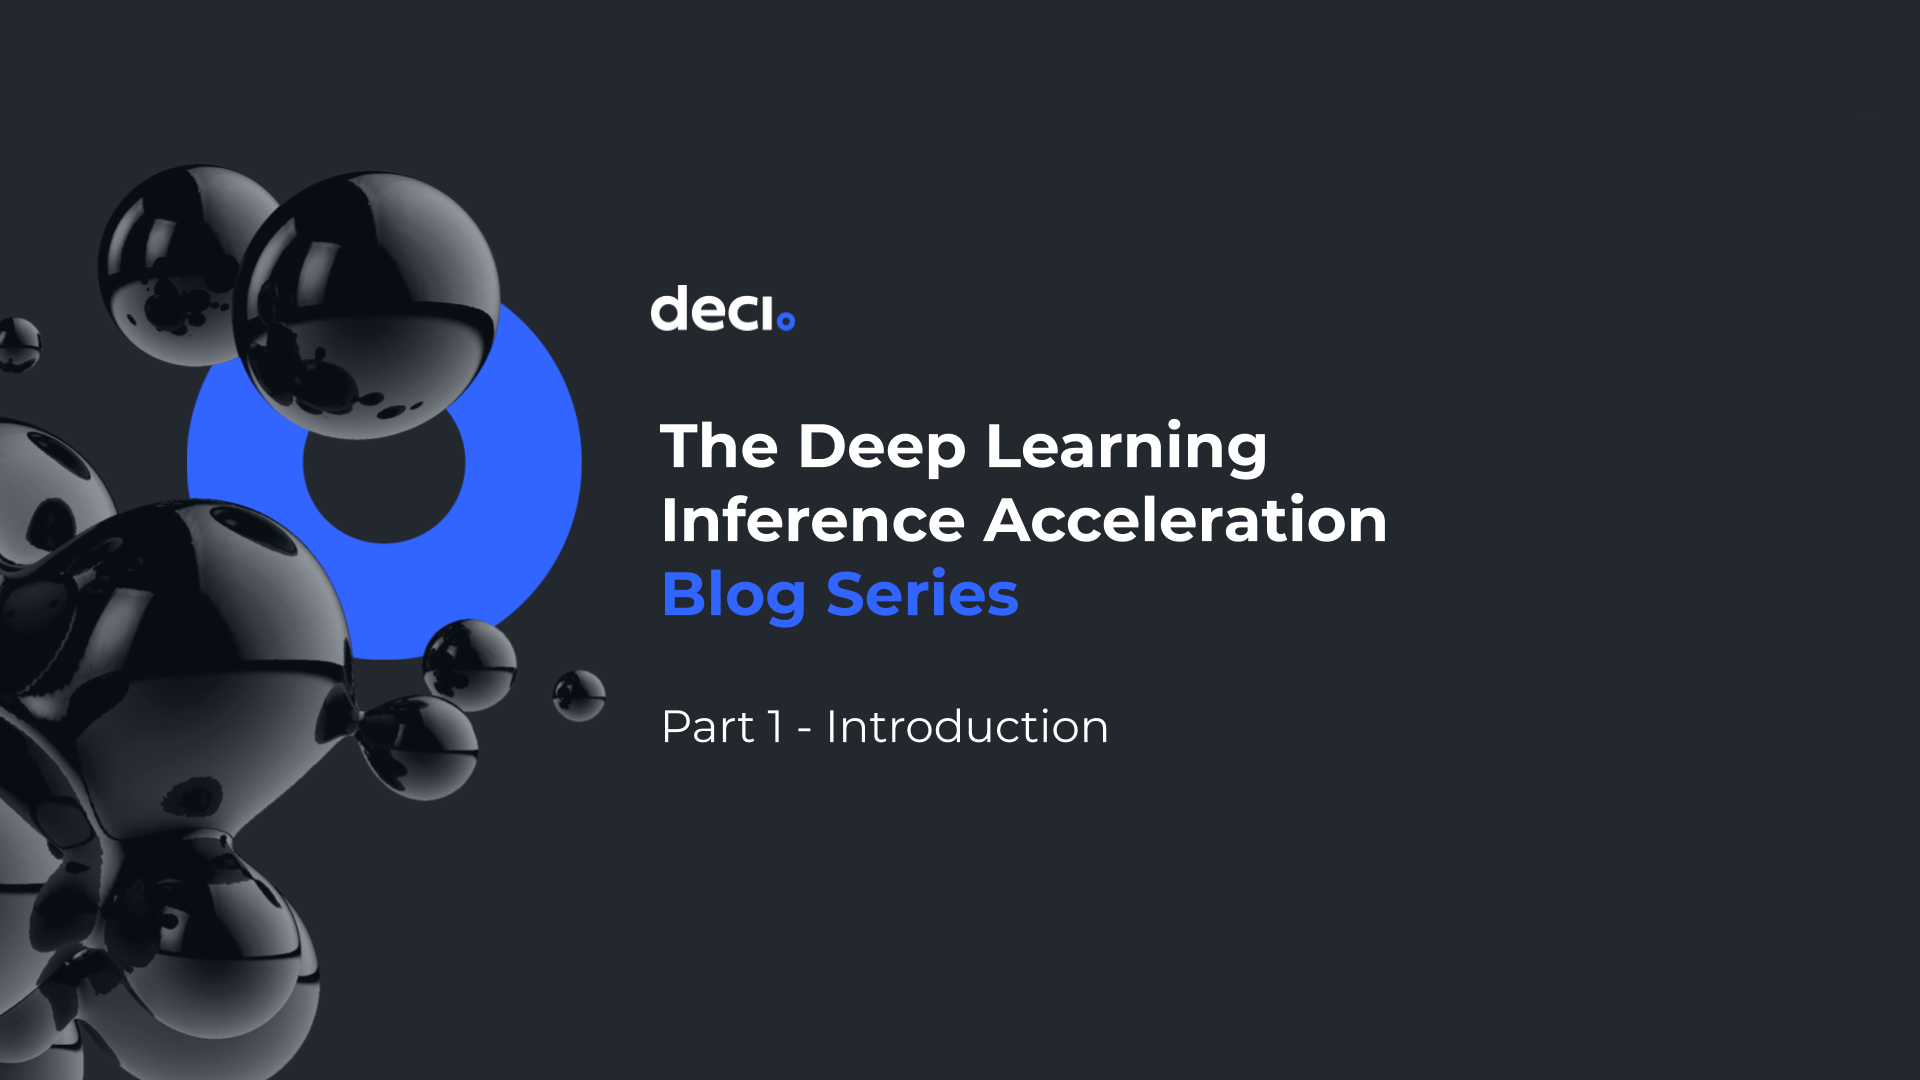 The Deep Learning Inference Acceleration Blog Series - Part 1: Introduction